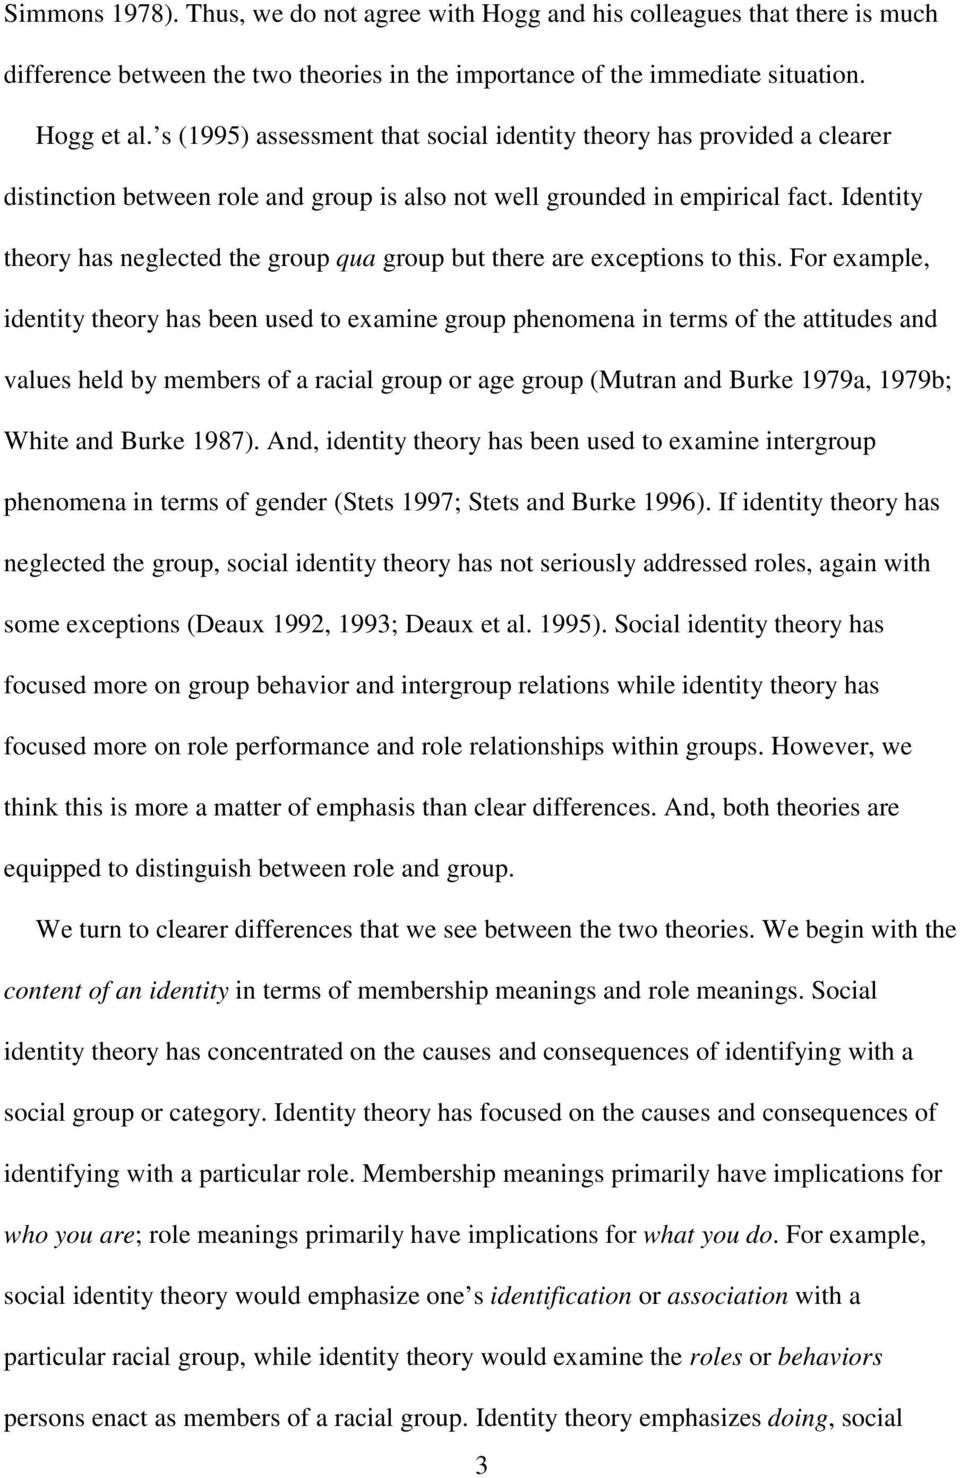 Identity theory has neglected the group qua group but there are exceptions to this.